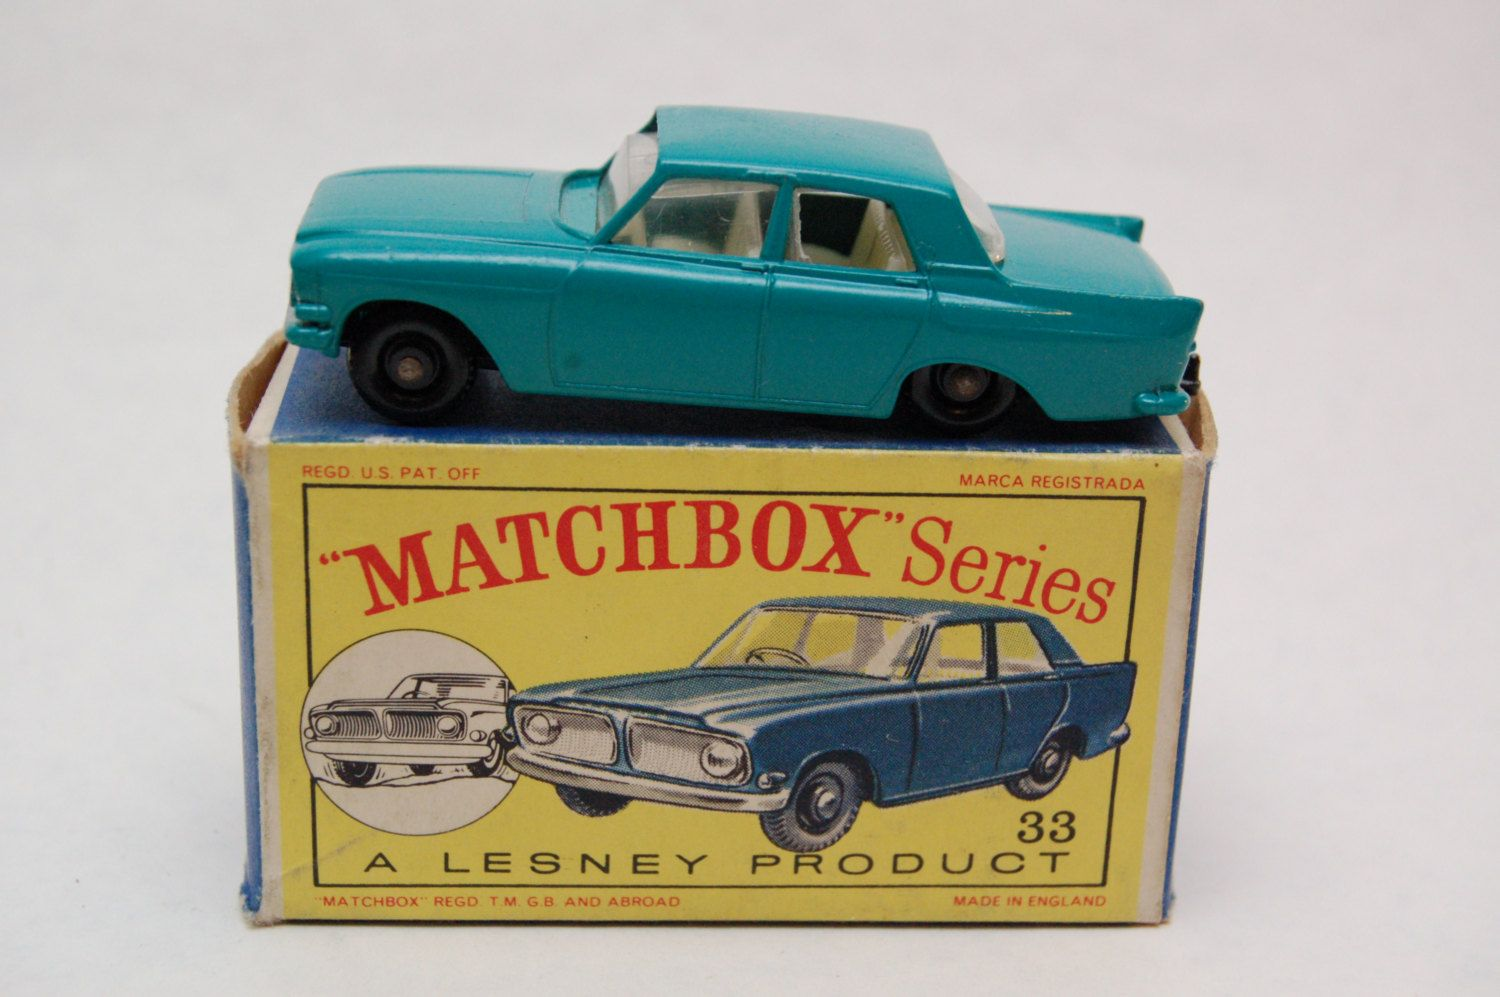 No 33 Ford Zephyr 6 Mk Iii W Original Box By Matchbox Lesney England 60 S Toy Car Great Gift Idea Stocking Stuffer Toy Car Stocking Stuffers For Dad Matchbox